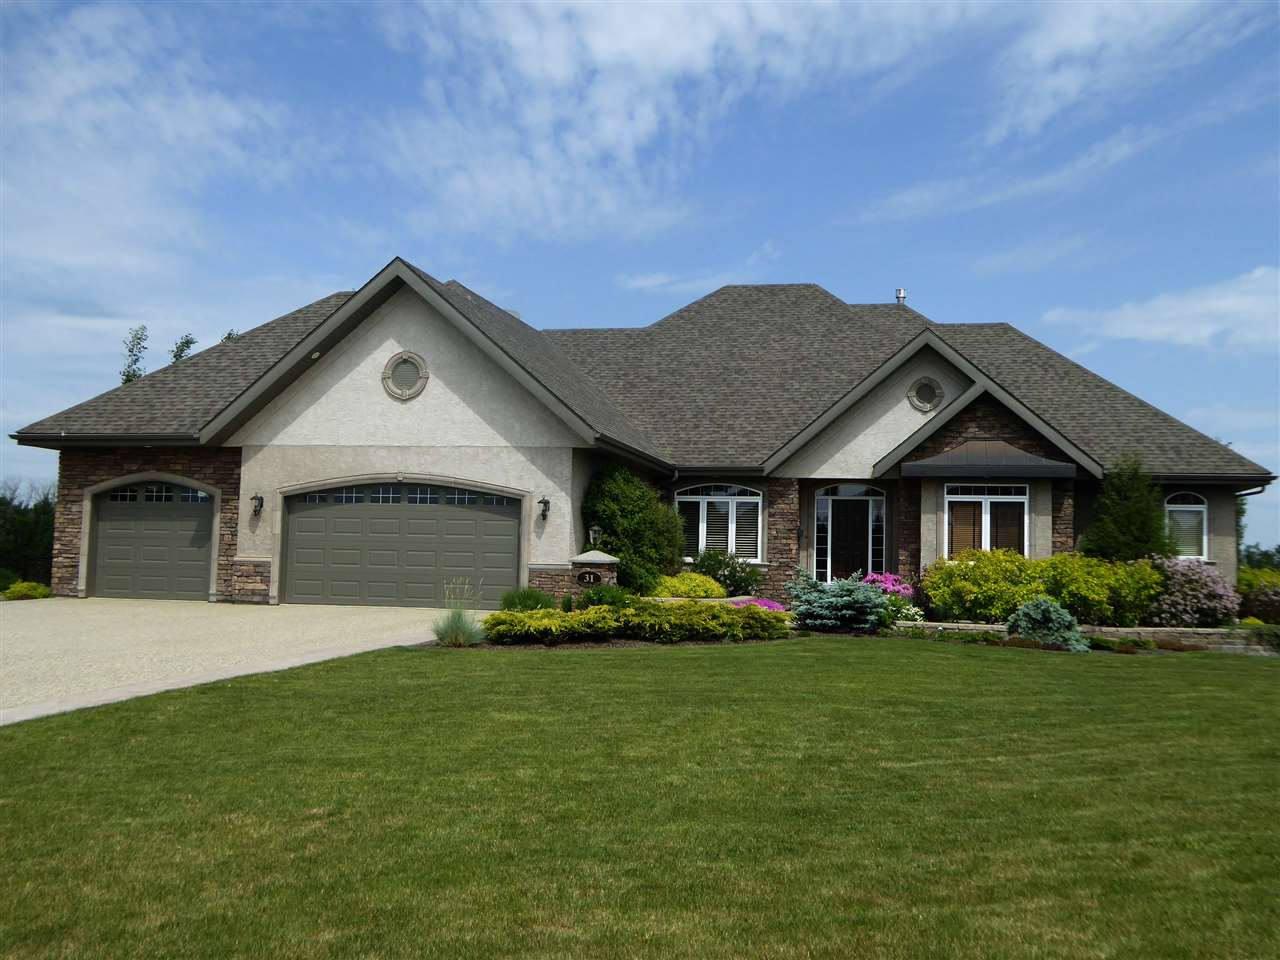 Beautiful Executive 2500 sq.ft walk-out bungalow on quiet cul-de-sac in Countryside Ravines features high quality custom finishings & extensive millwork. The Great room showcases a dbl sided stone F/P & large windows. Gourmet kitchen w/ hearth style BI cooktop, BI ovens, walk-through pantry & granite island w/breakfast bar opens to a spacious dinette area. The grand Master suite has a gas F/P, double WI closets, 5 pc ensuite w/Bain-Ultra soaker tub and WI shower. Expansive windows in sitting area w/private deck access. Completing the main floor w/imported solid cork flooring are a study, formal dining room, powder room, bedroom w/BI window seat, 4-pc bath, laundry & mud room. A curved staircase opens to a spacious media/games area w/wet-bar, 2 addt?l bedrooms, 4-pc bath, craft room, wine room and state-of-the-art fitness room. O/S triple garage w/floor drain is f/f and heated. Gorgeous yard w/ multiple hard scapes incl water-feature, hot tub, mature trees & BI irrigation. Only 2 paved minutes to Edm.